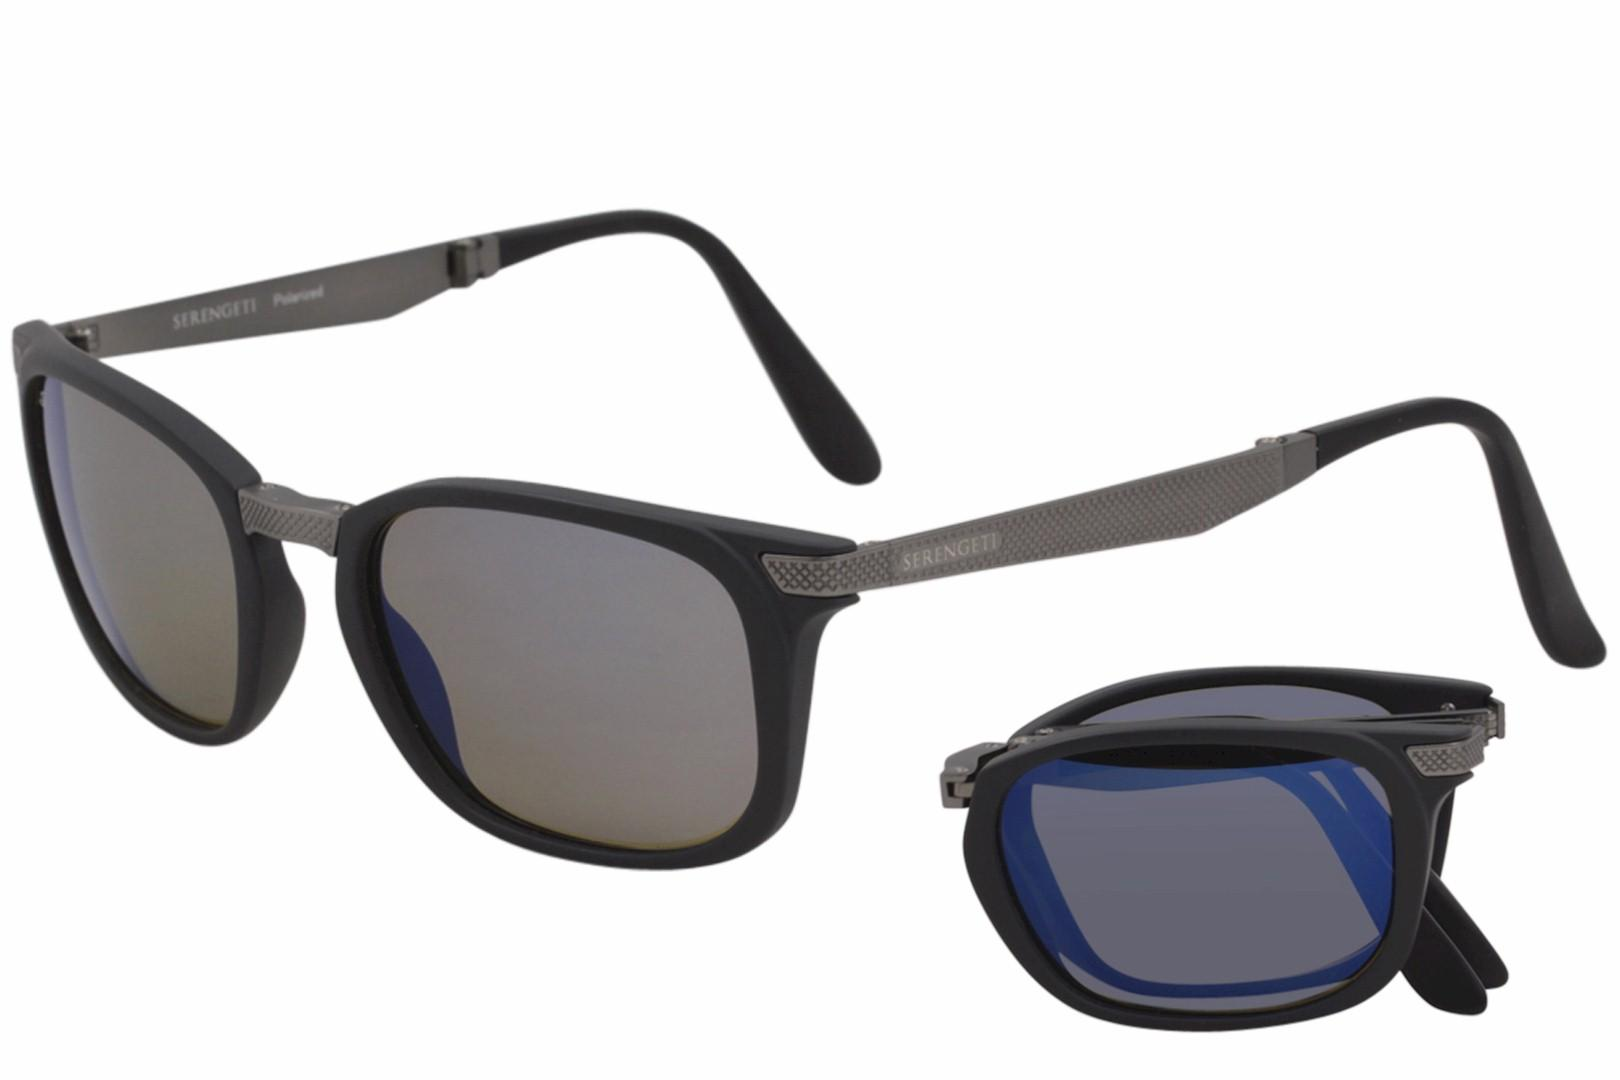 SFX Replacement Sunglass Lenses fits Bvlgari 5025 62mm Wide Sunglasses &  Eyewear Accessories Accessories